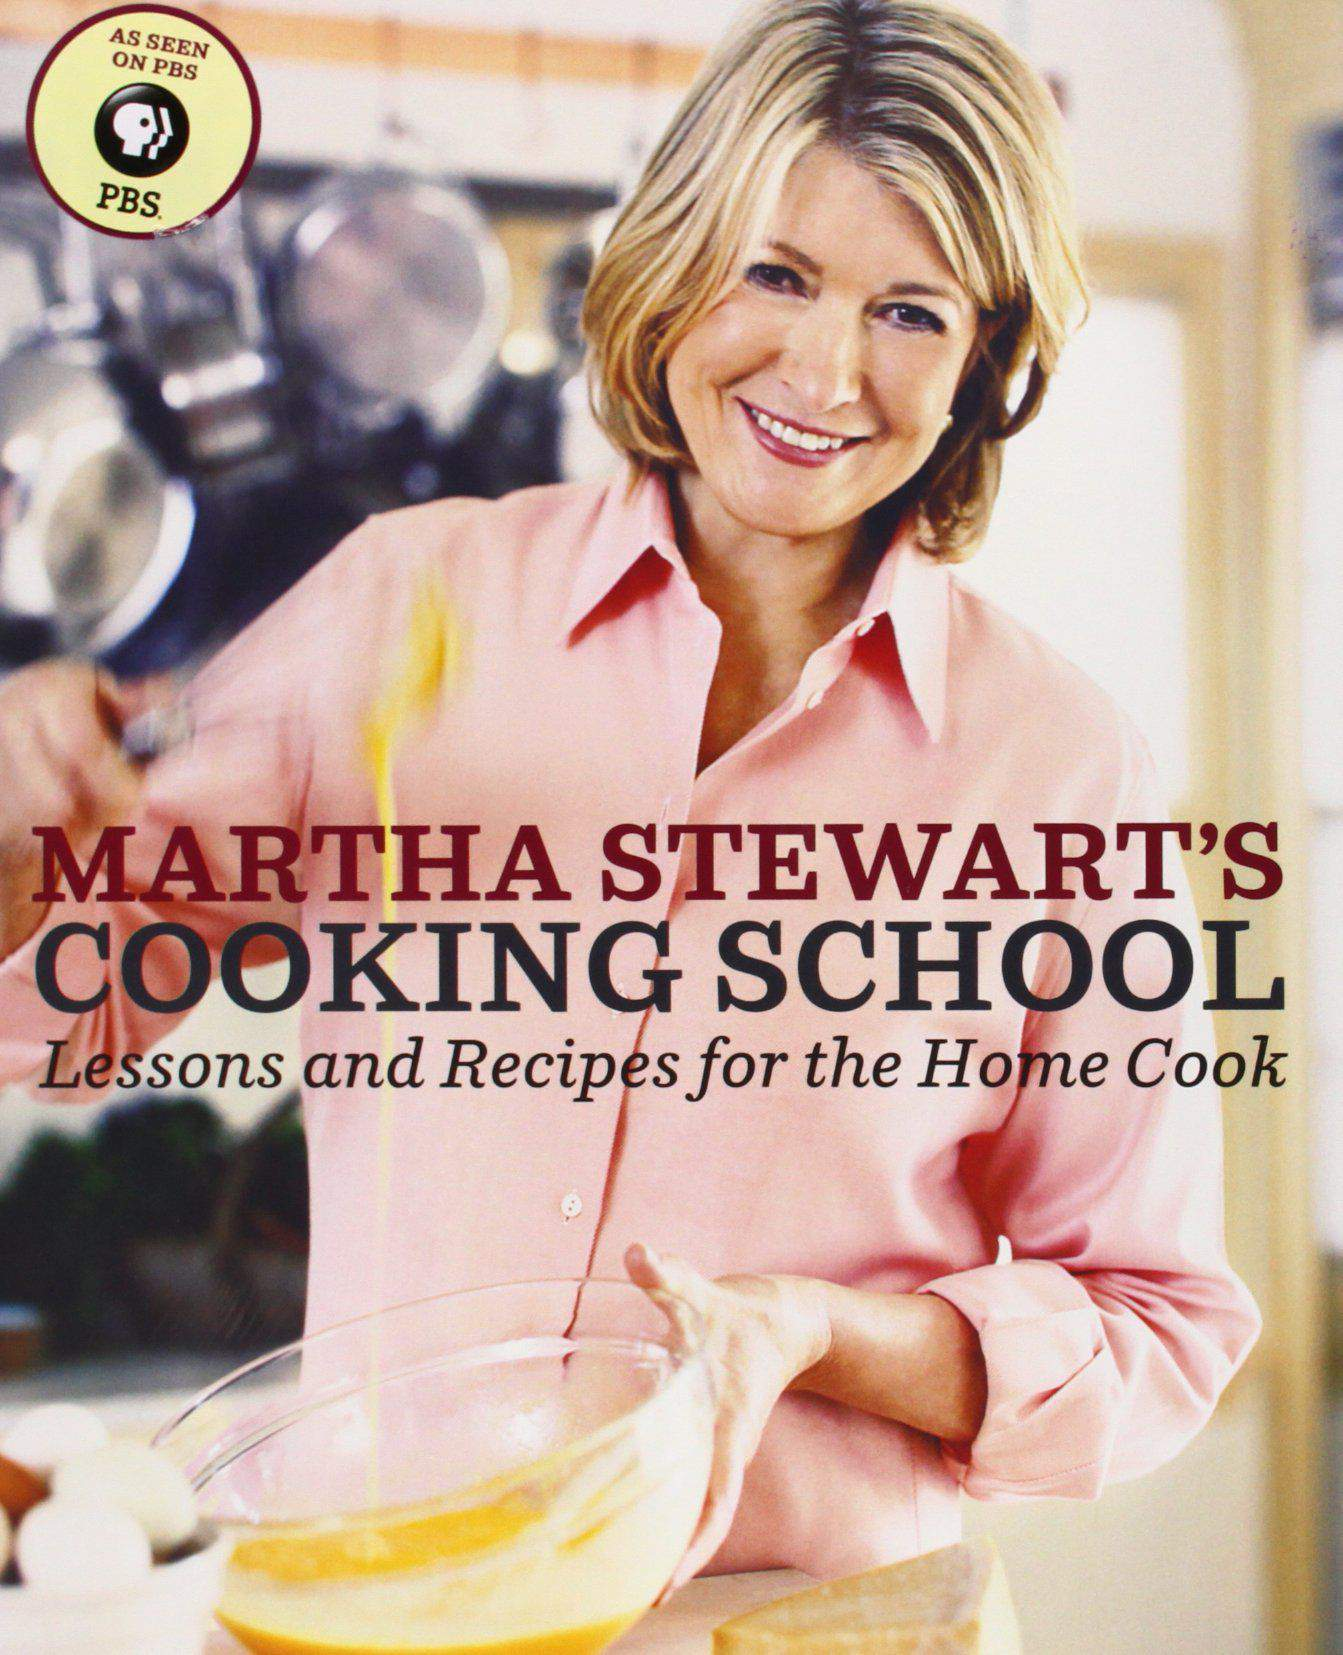 Martha Stewarts Cooking School Lessons And Recipes For The Home Cook